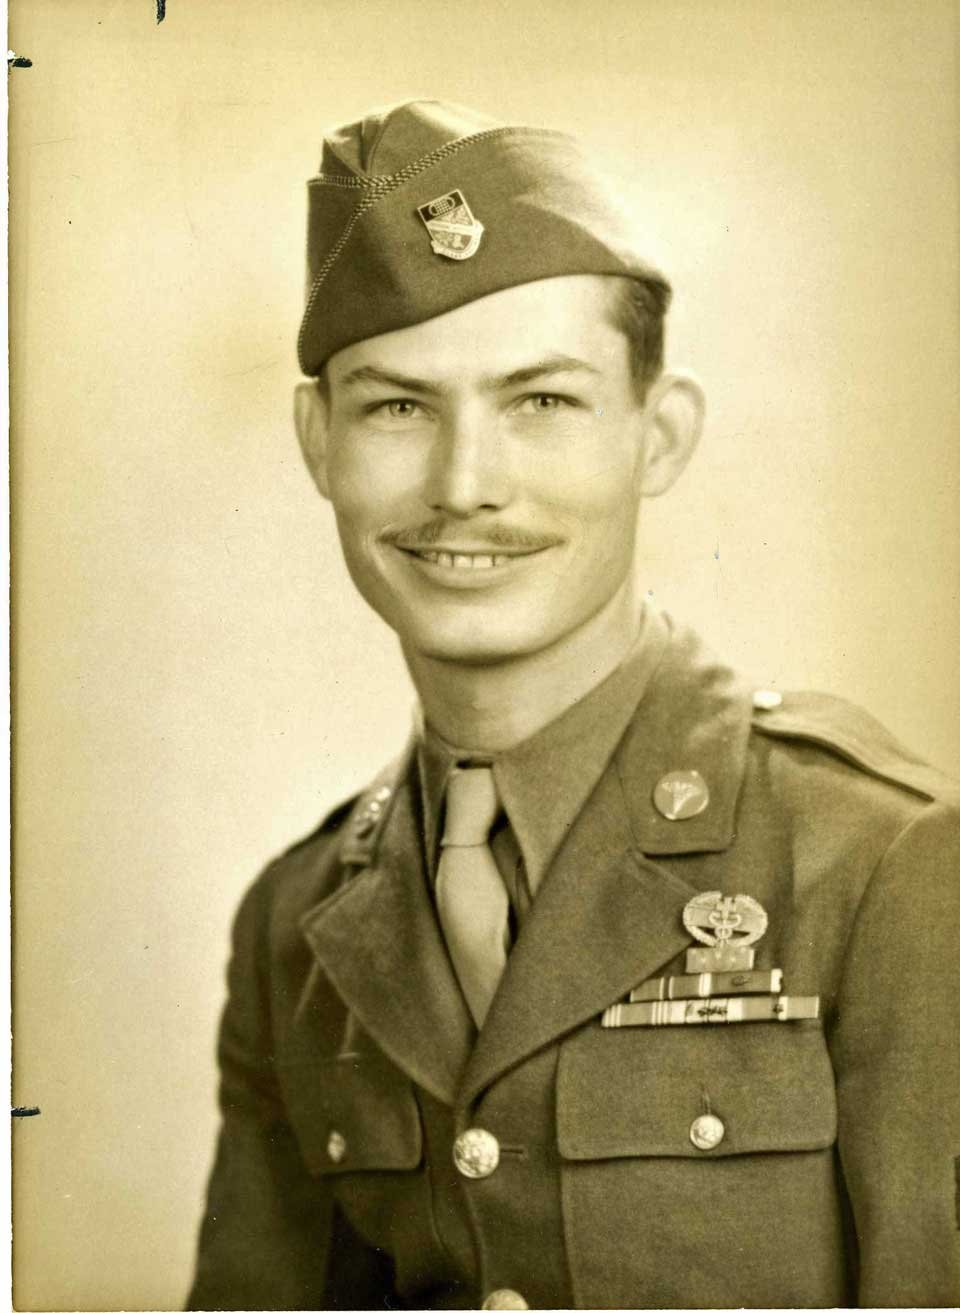 Cpl. Desmond Doss, conscientious objector, medic, WWII hero of Hacksaw Ridge and Medal of Honor recipient